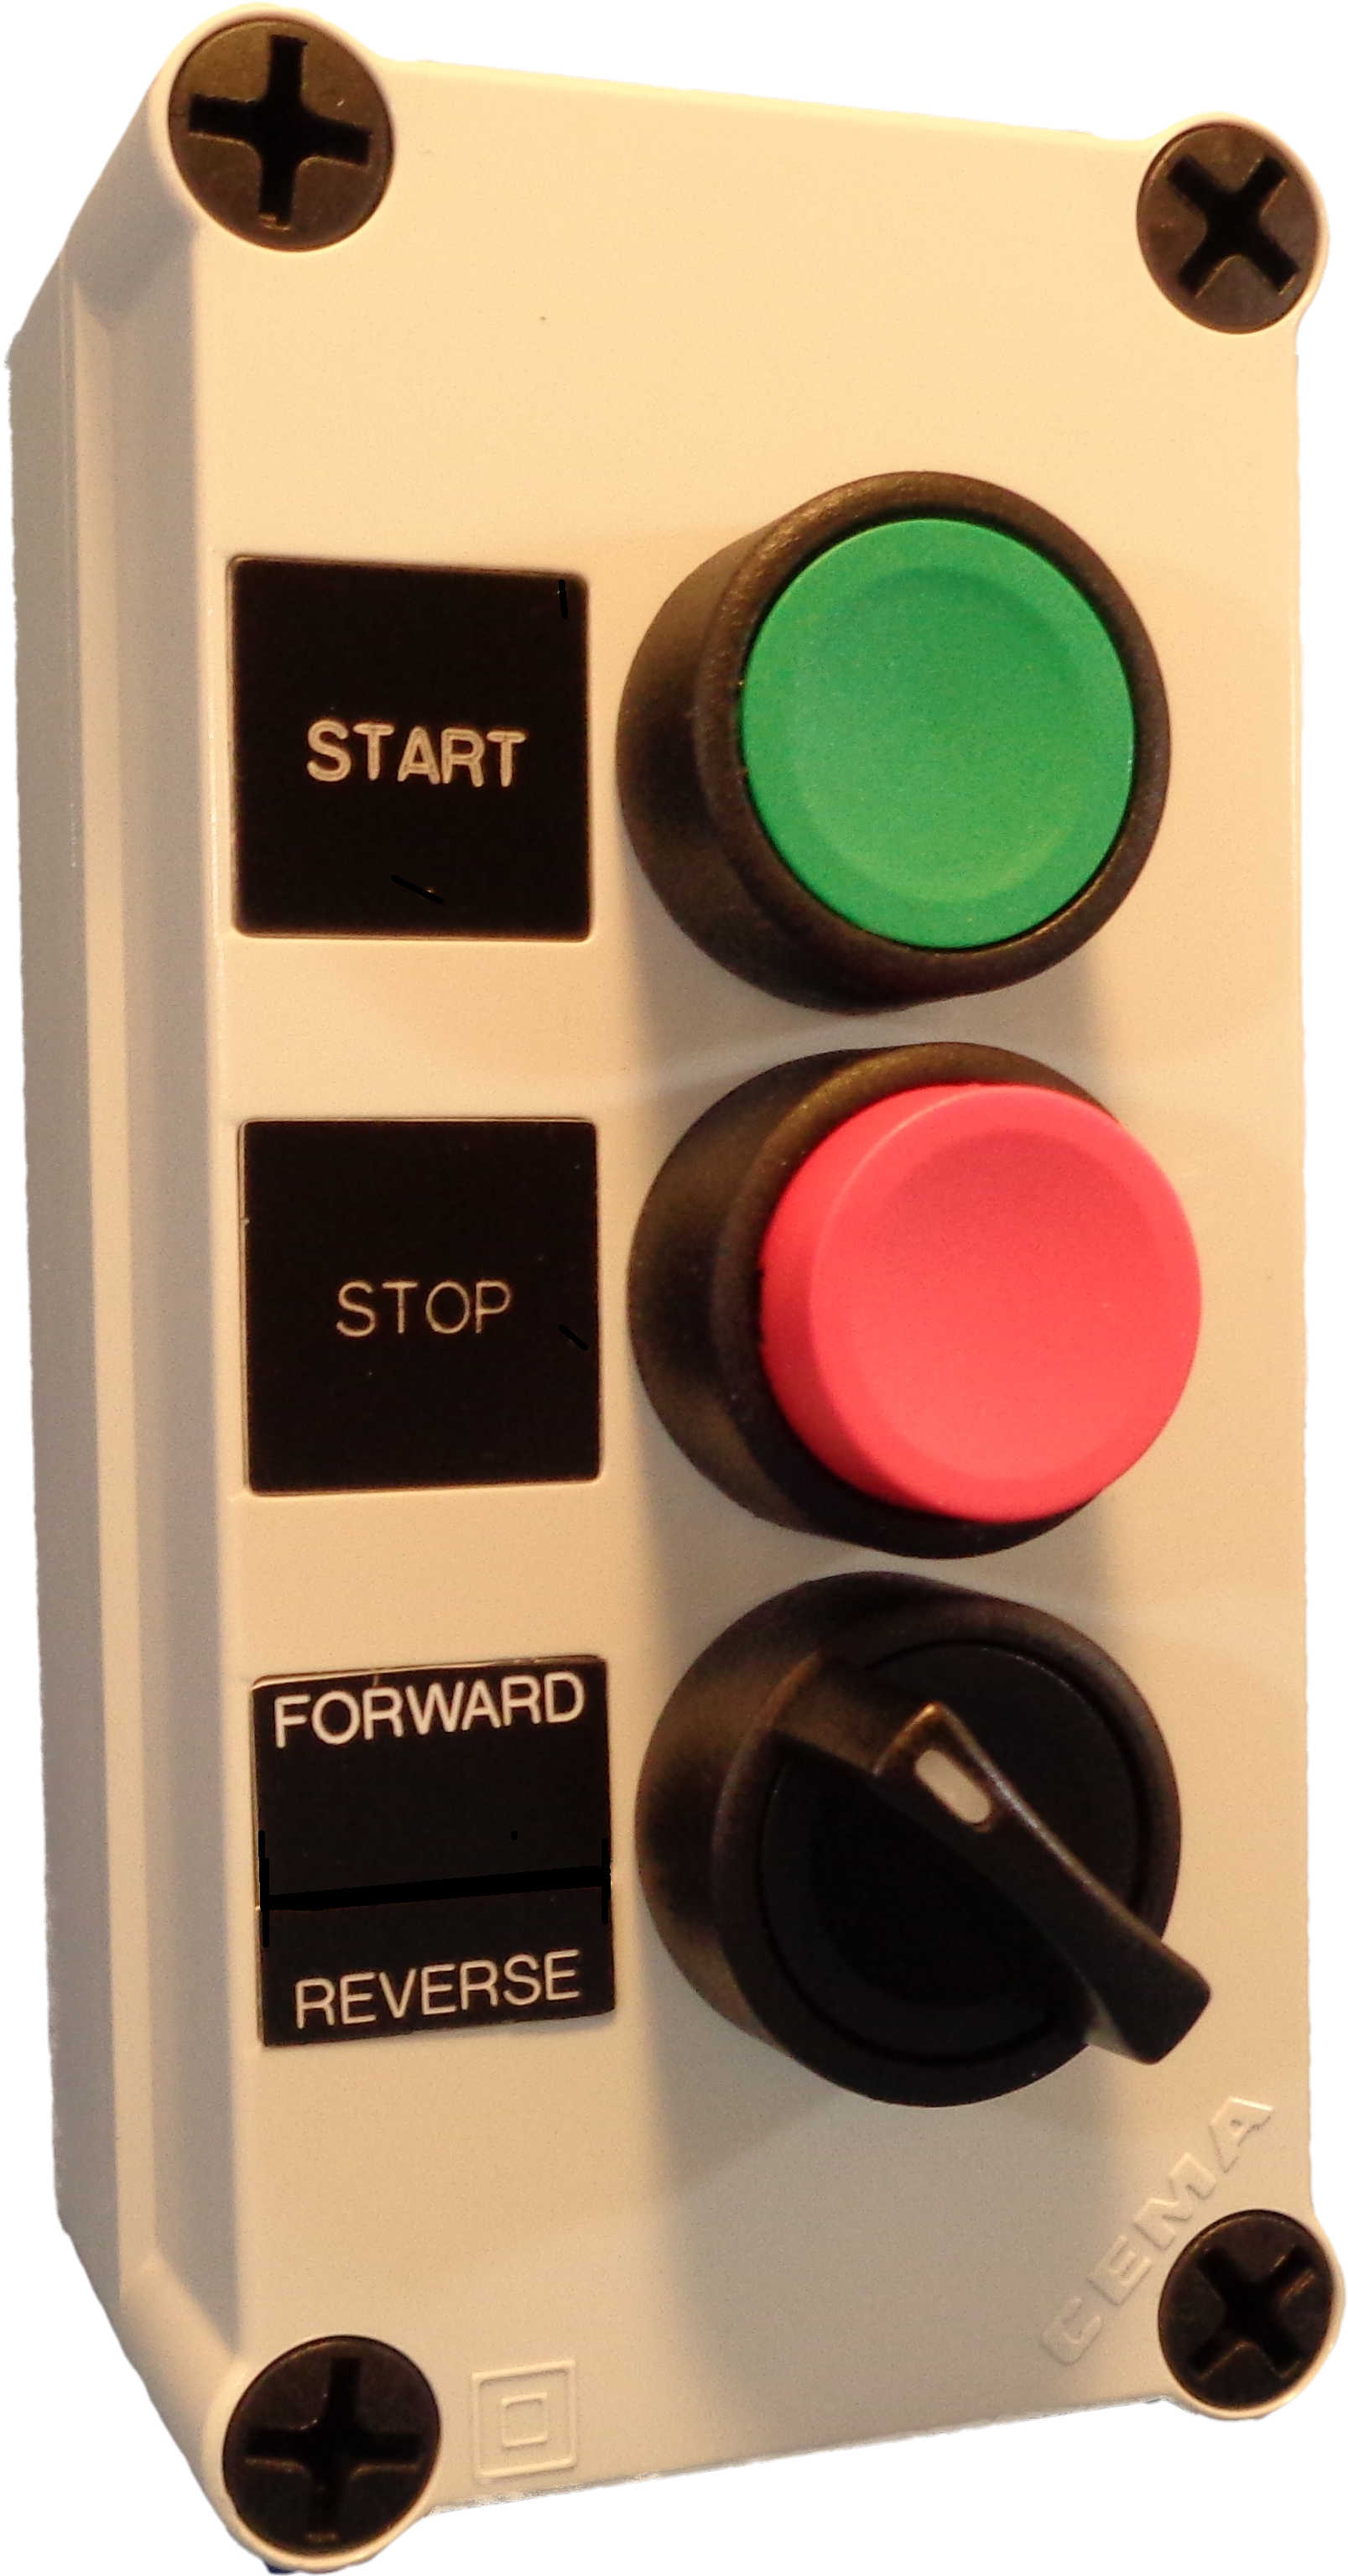 N5 Pushbutton Stations 22mm Iec Operators Springer Controls Company Two Station Start Stop Wiring We Offer Three Operator For A Variety Of Common Applications With Selector Switch Or Pilot Light Up Down An Emergency Are